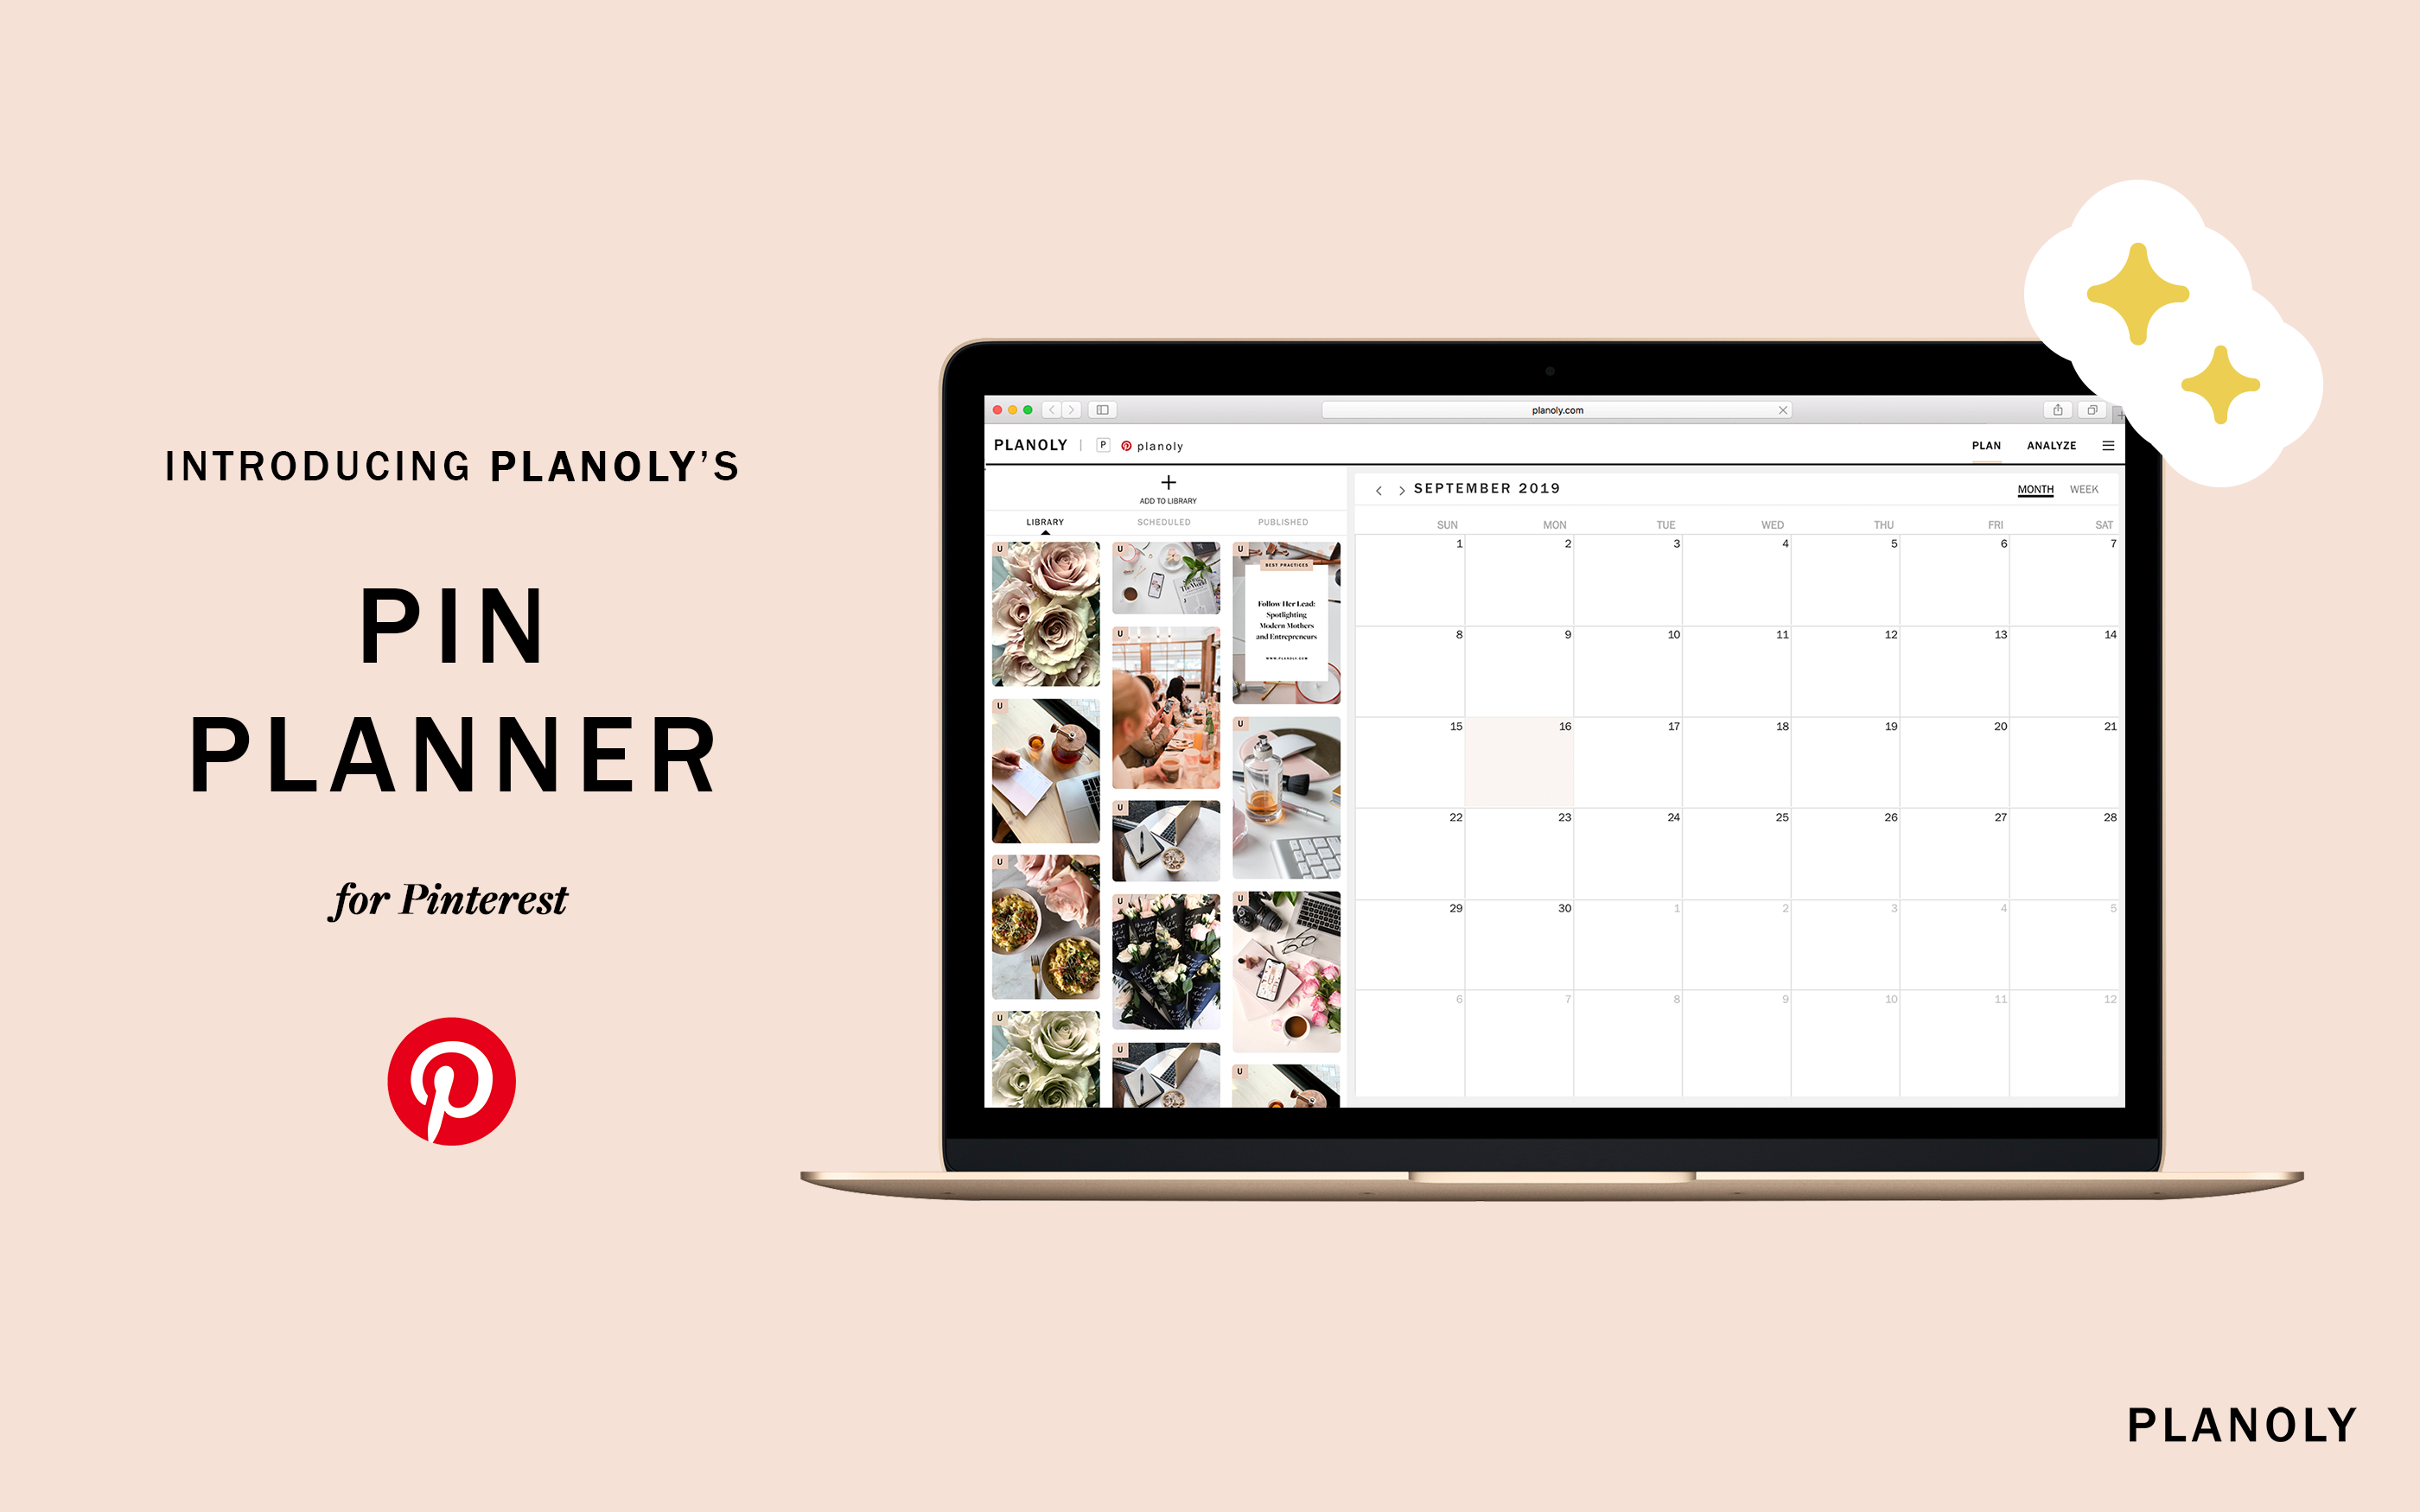 PLANOLY Product Spotlight: Pin Planner for Pinterest, by planoly